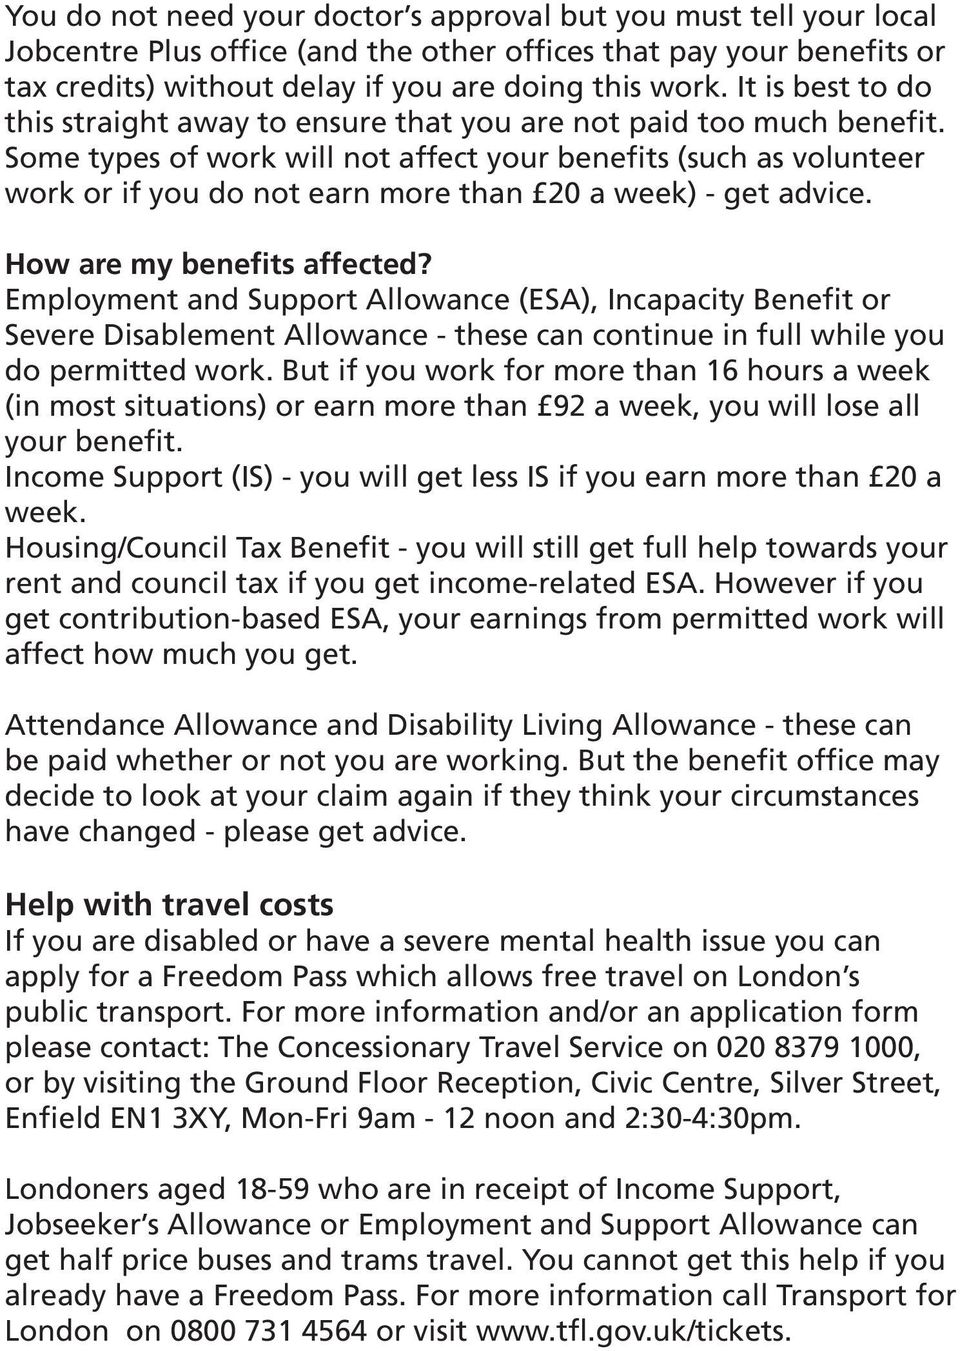 Some types of work will not affect your benefits (such as volunteer work or if you do not earn more than 20 a week) - get advice. How are my benefits affected?